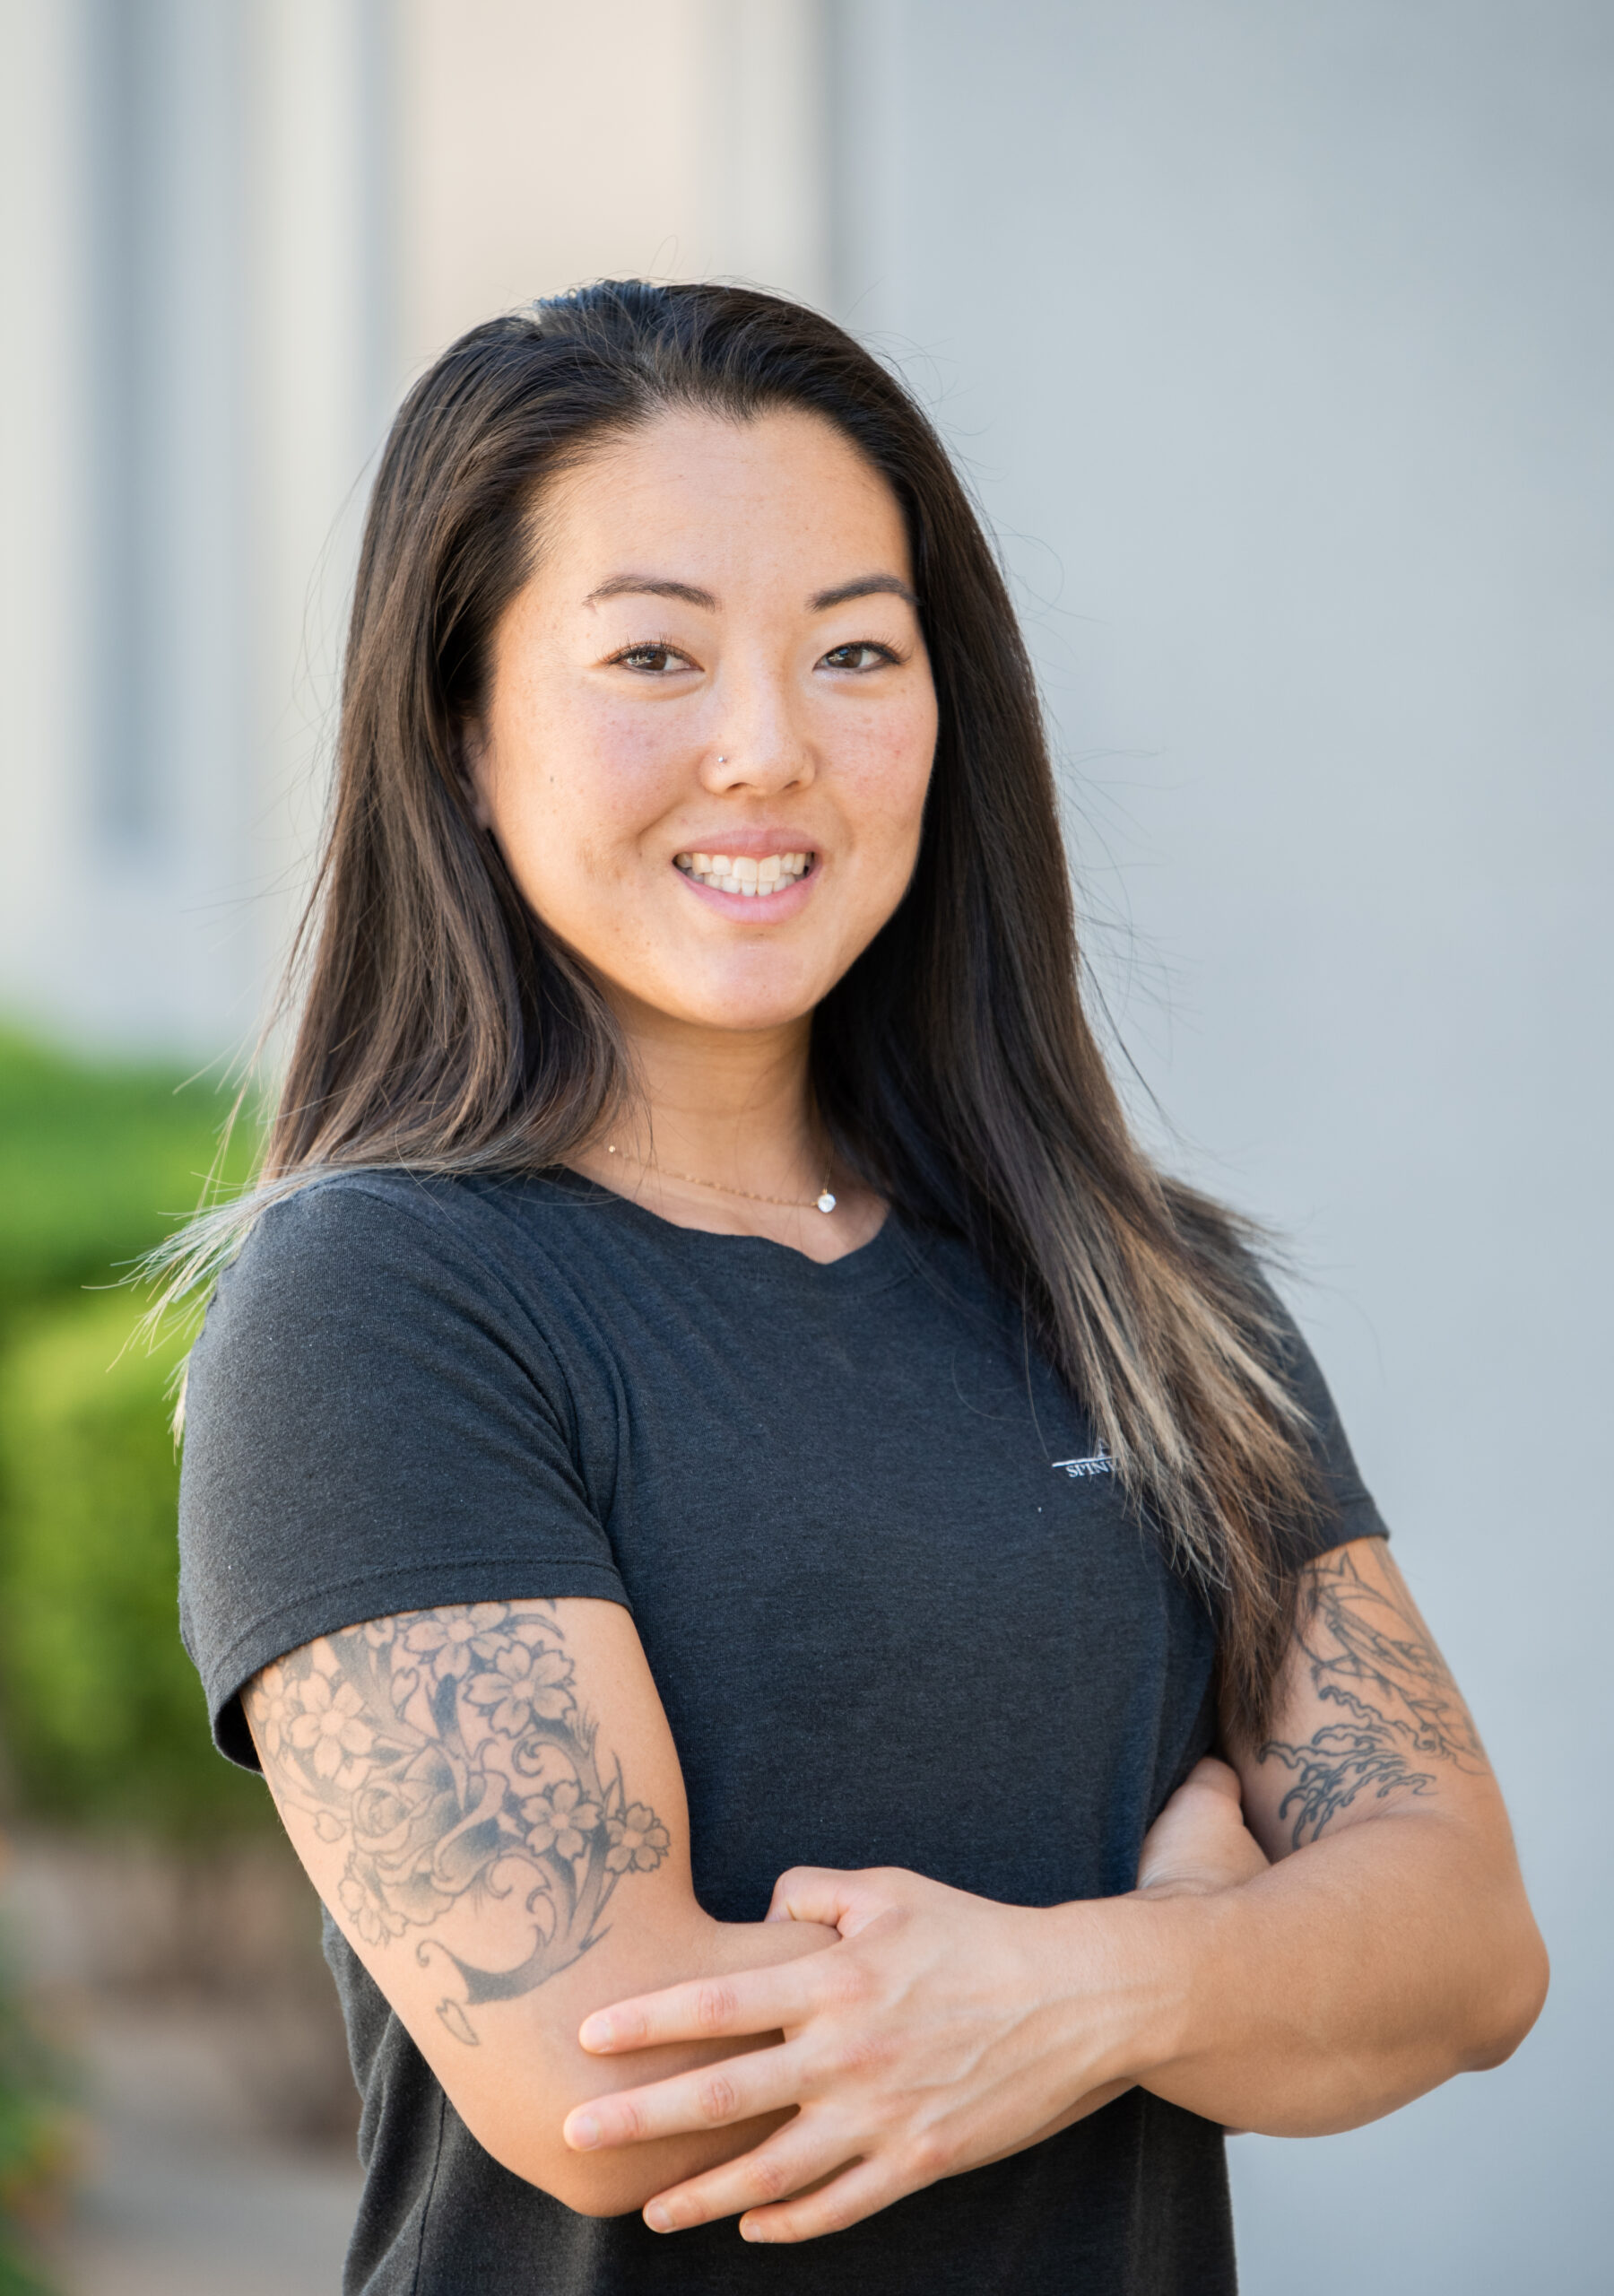 Jess Shedlock – Massage Therapist and Personal Trainer